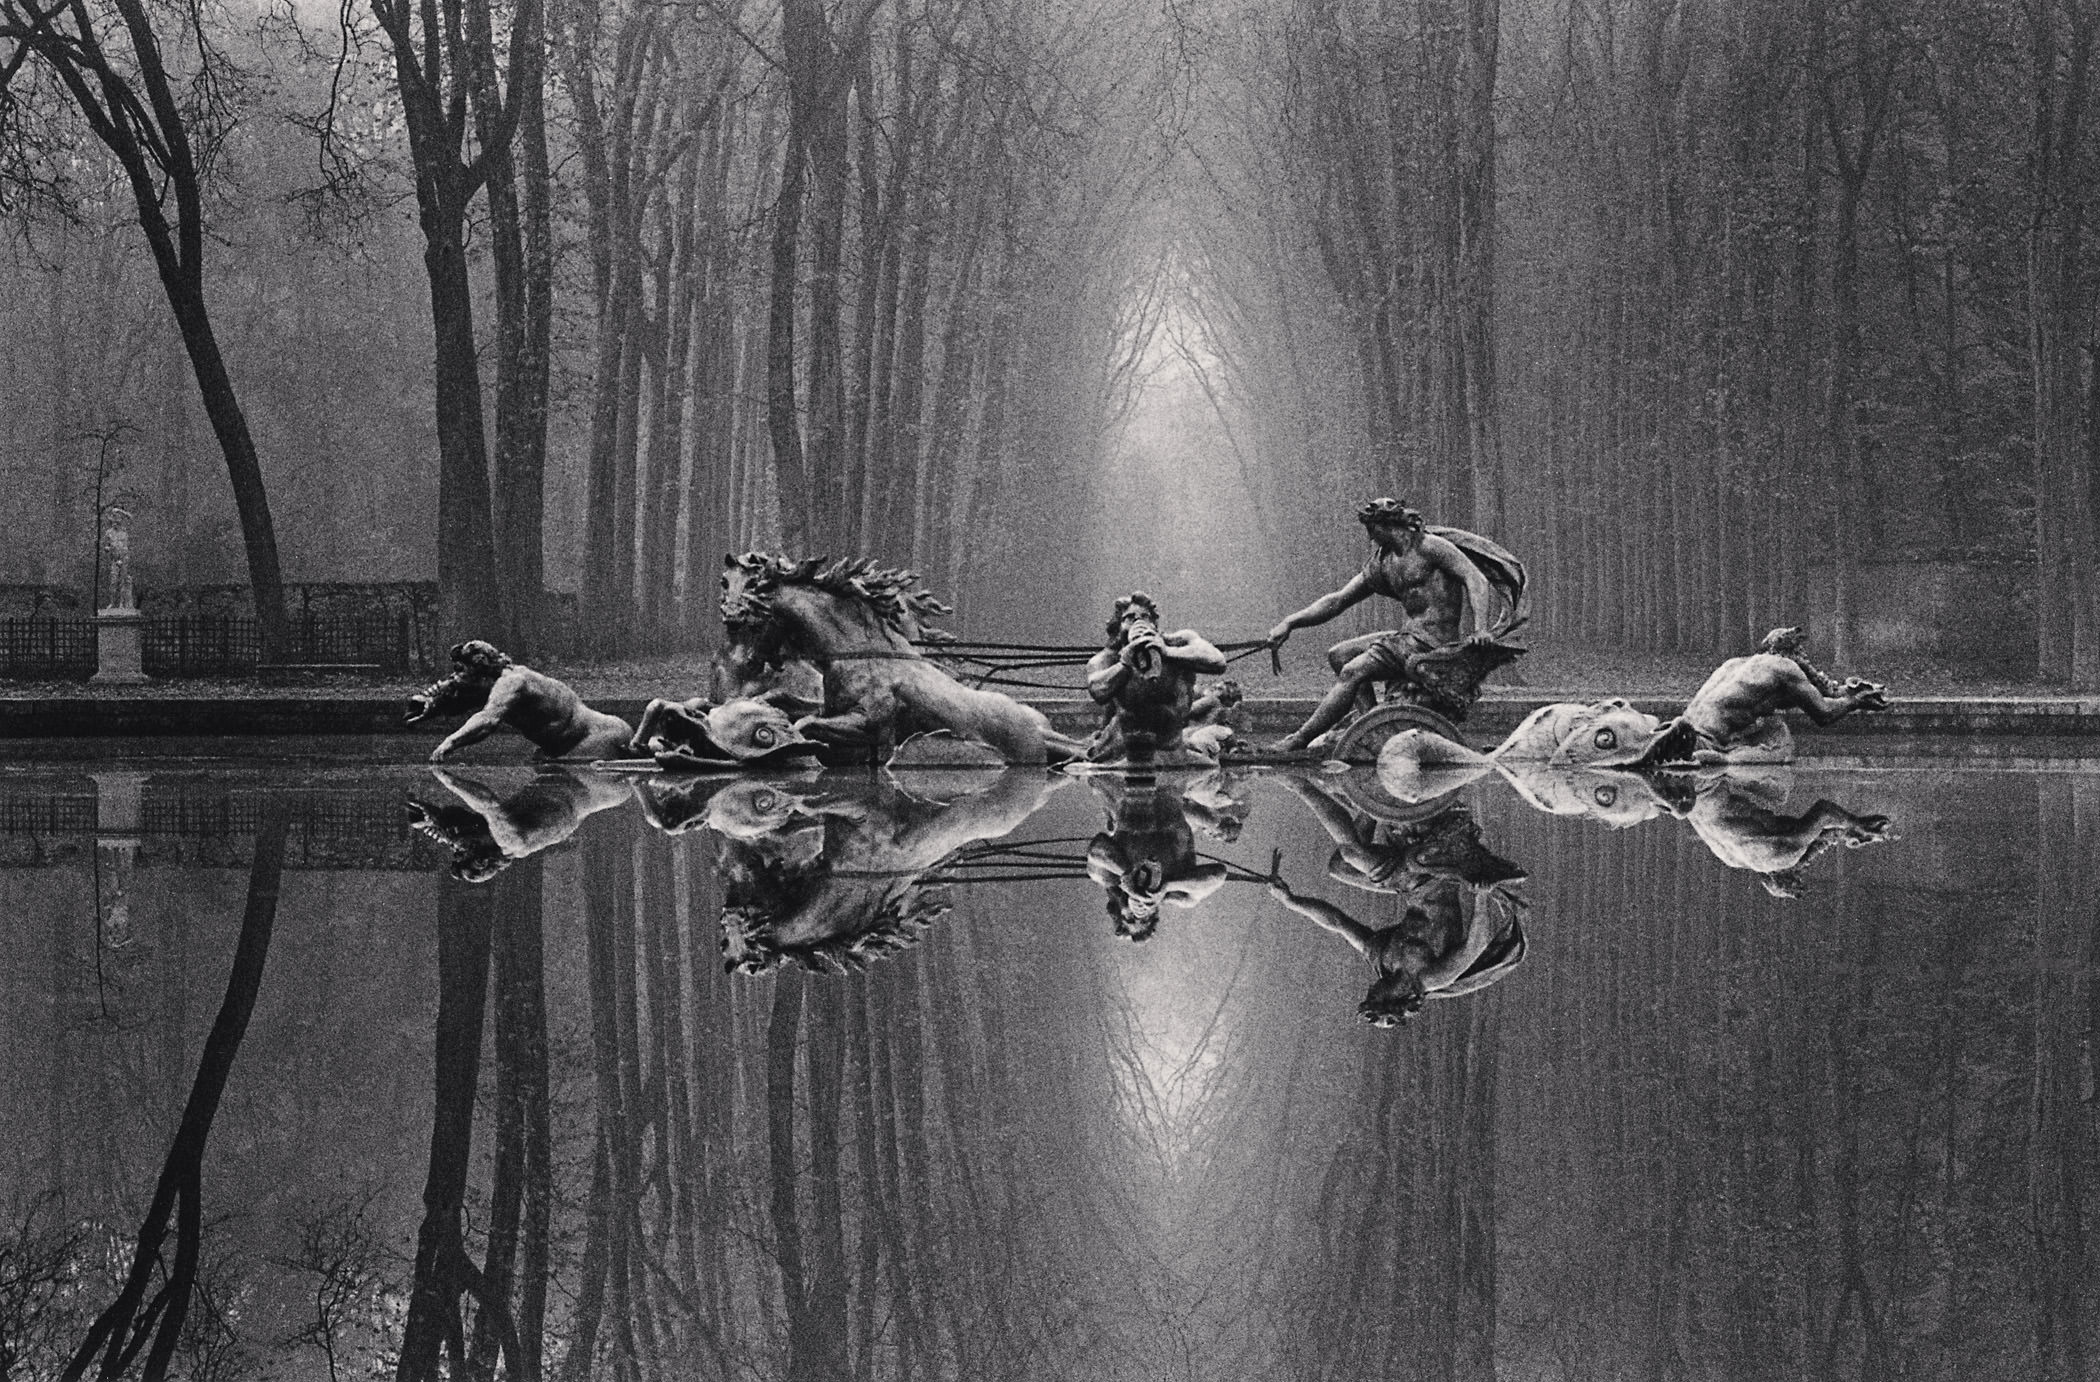 Black and White Photography by Michael Kenna • Design Father